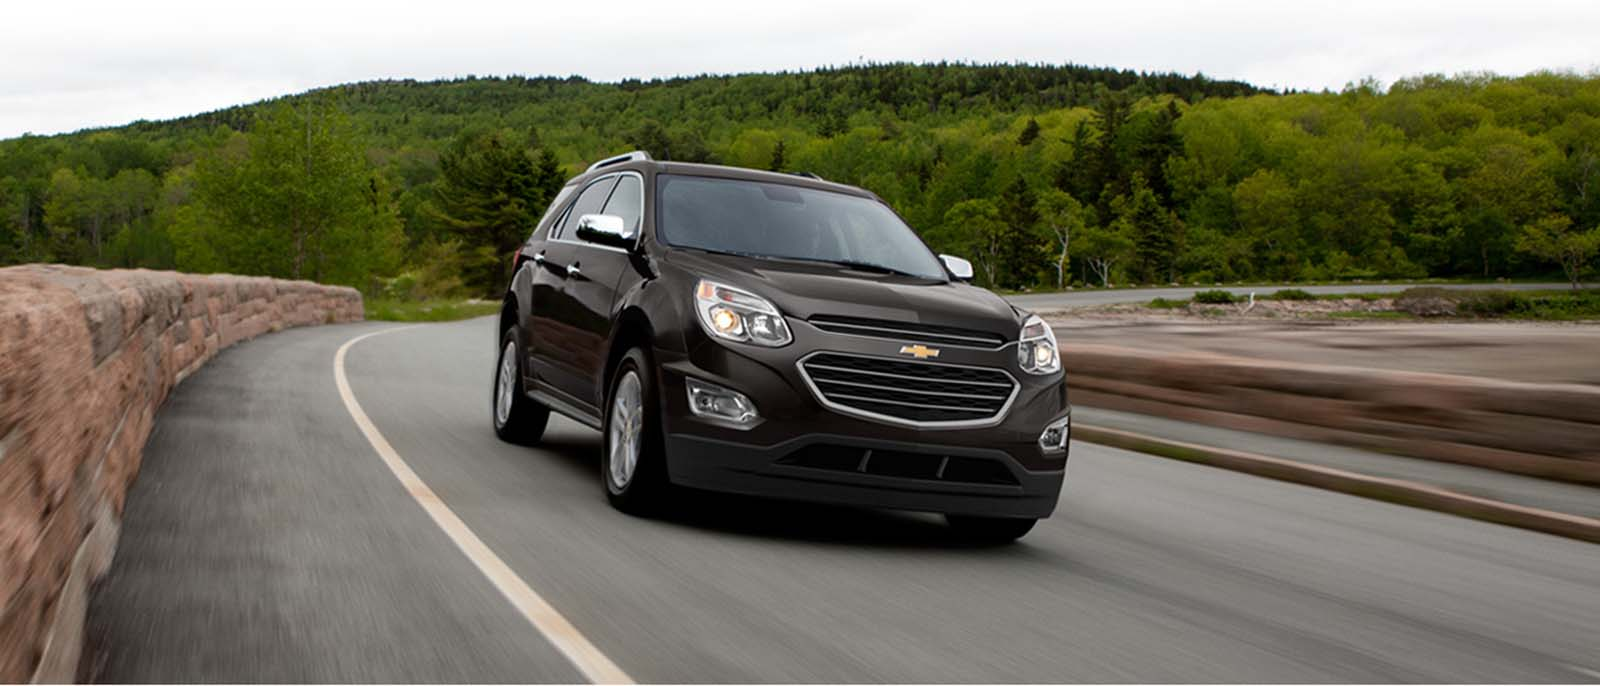 Mike Anderson Chevrolet Tires >> 2016 Chevy Equinox In Chicago, IL | Mike Anderson Chicago